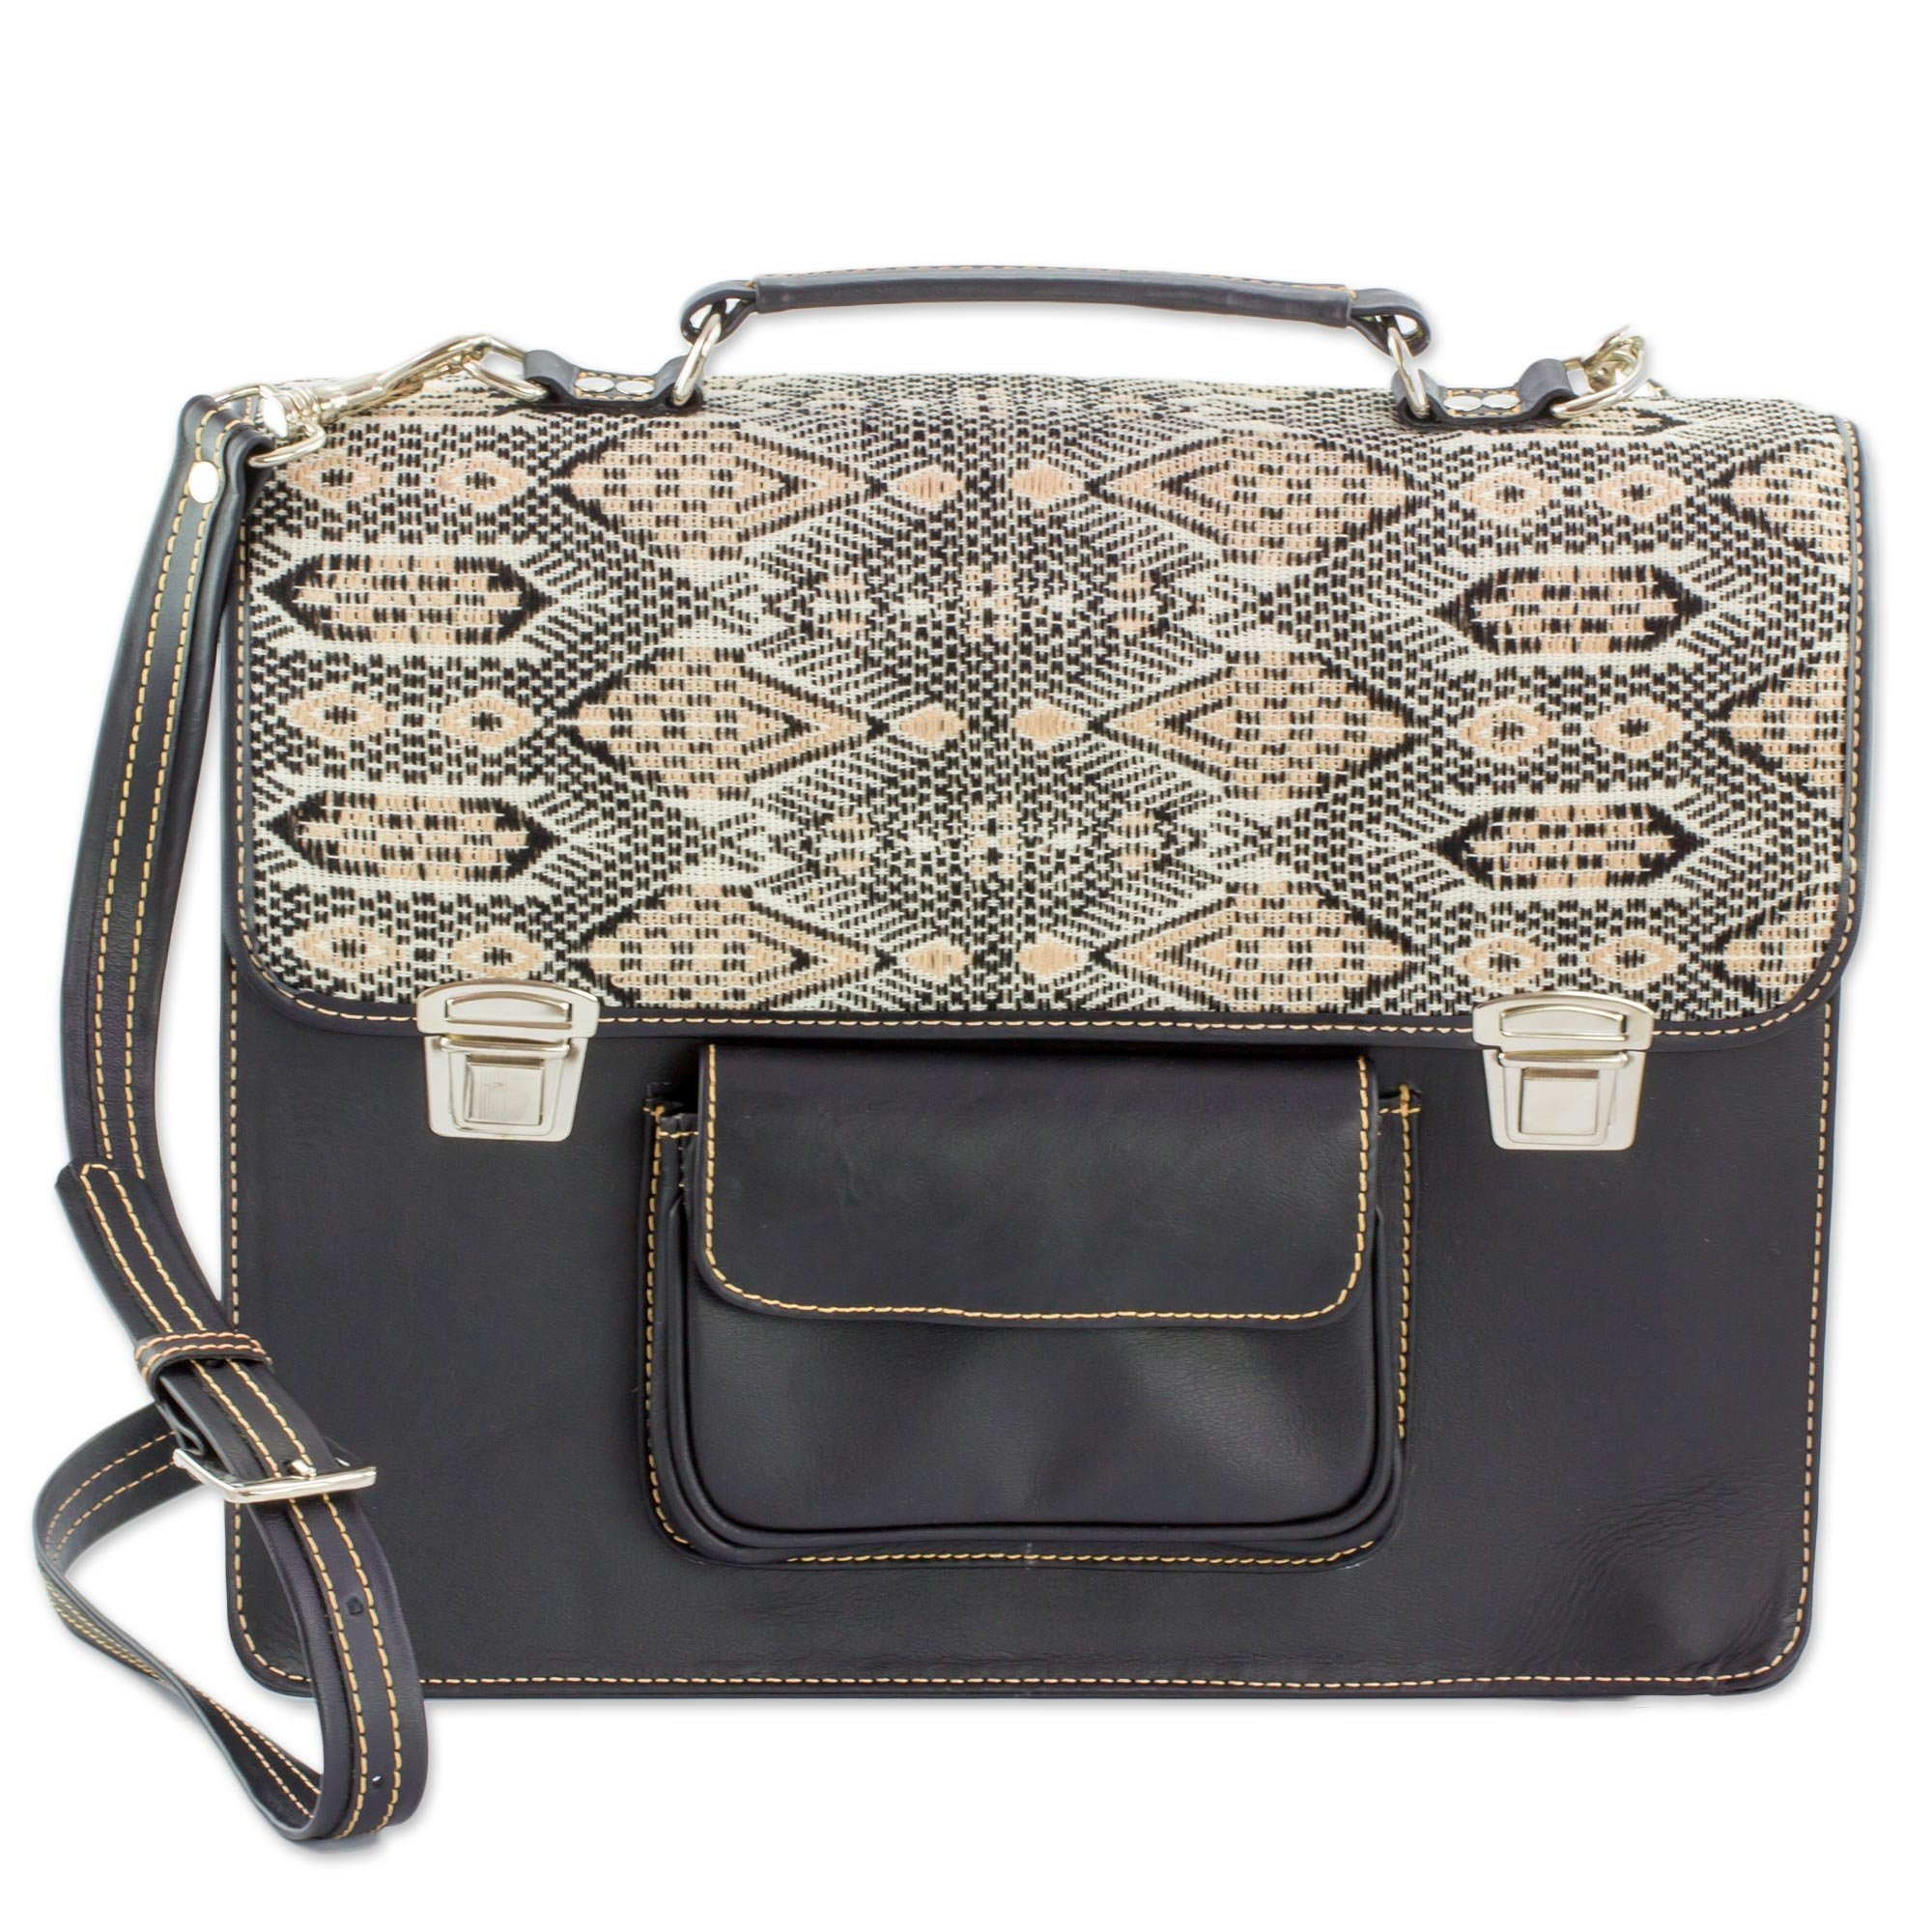 NOVICA Beige Leather and 100% Cotton Laptop Bag, 'Tricolor Kaleidoscope'